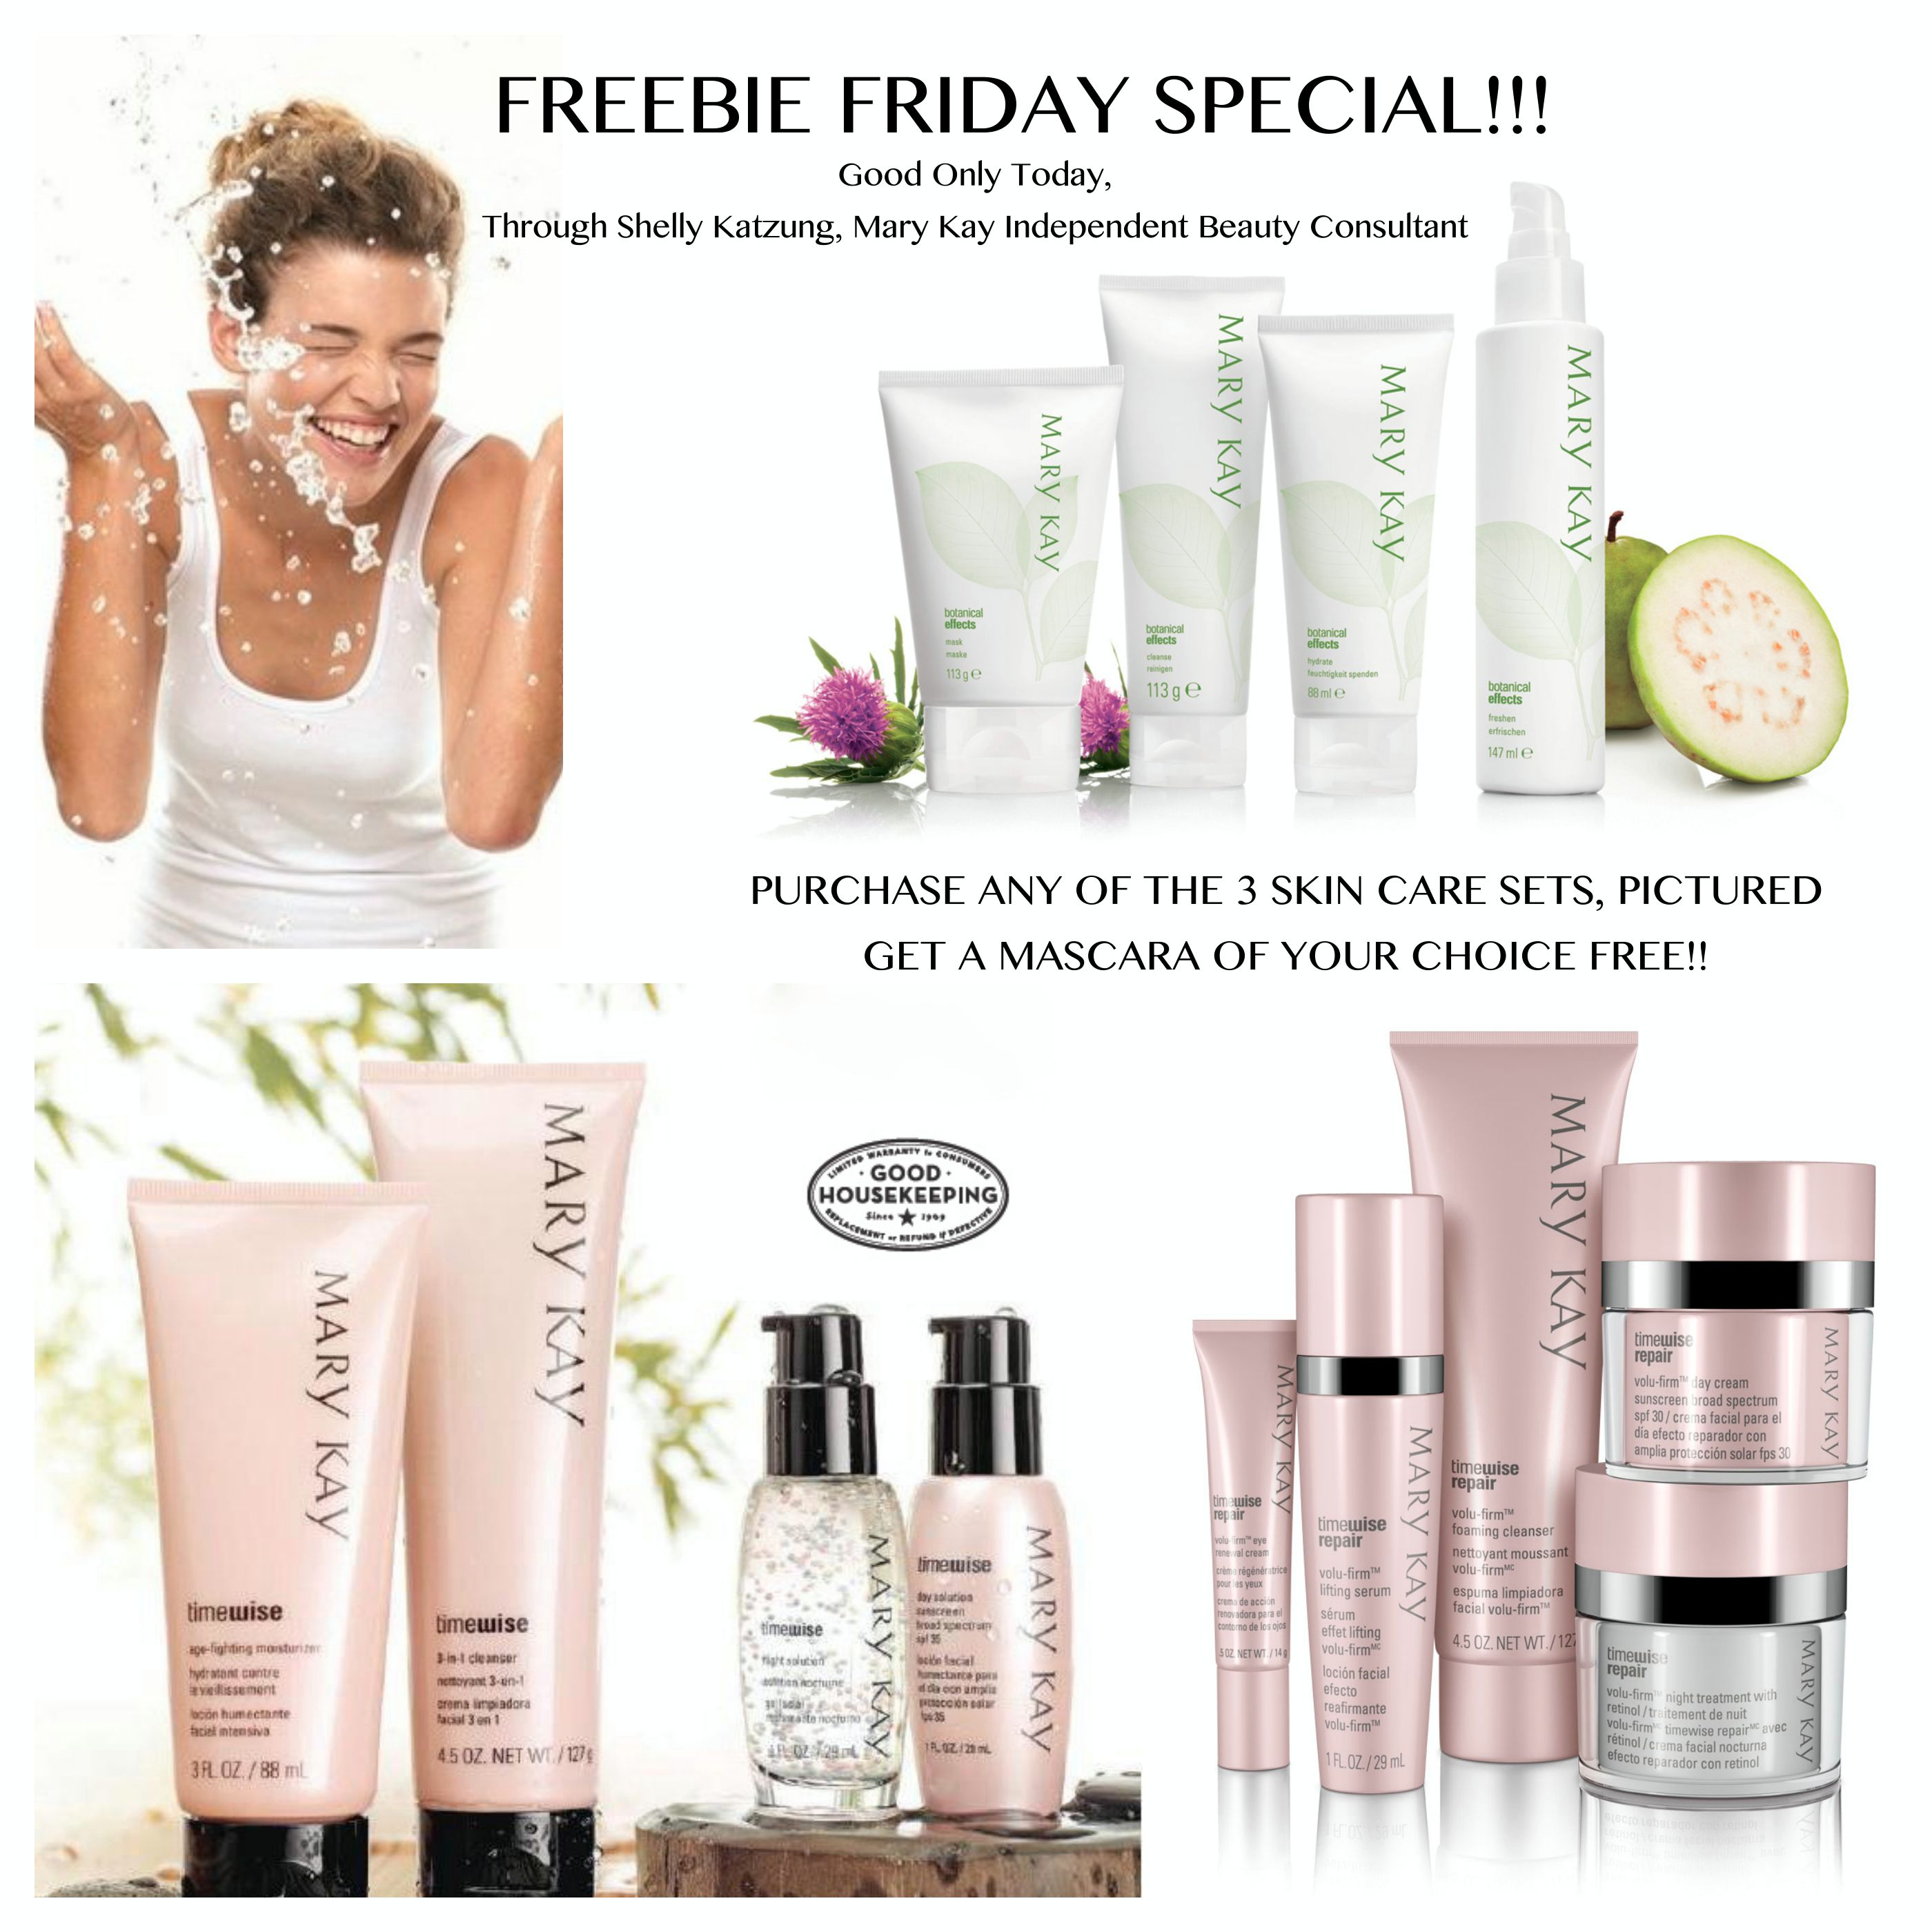 FREEBIE FRIDAY!! Purchase either the TimeWise Repair Set